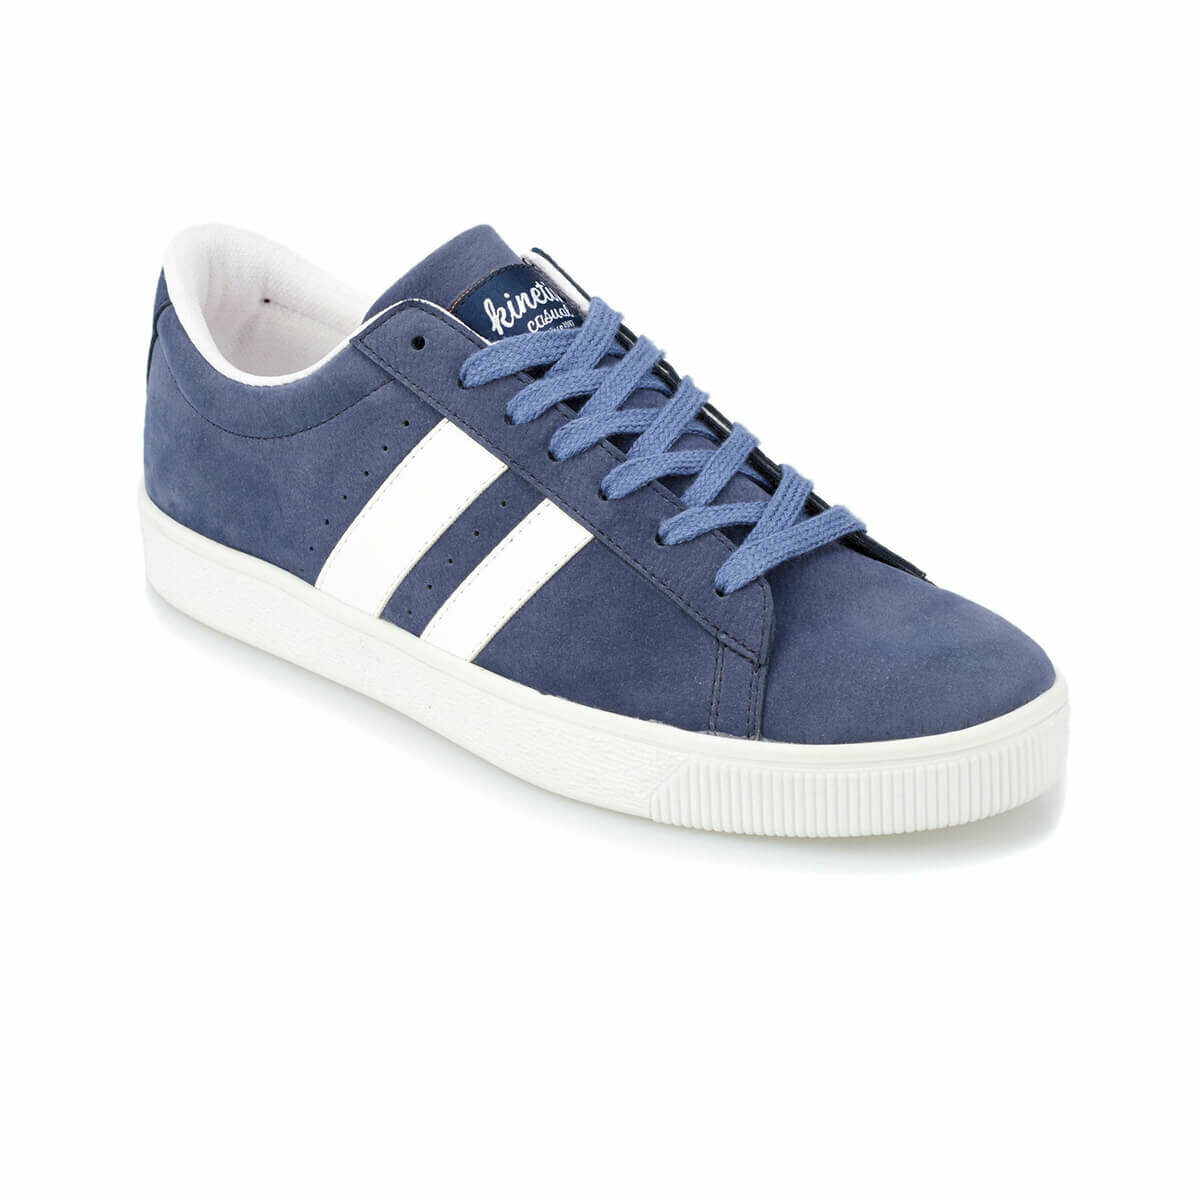 FLO FAITH Navy Blue Men 'S Shoes KINETIX